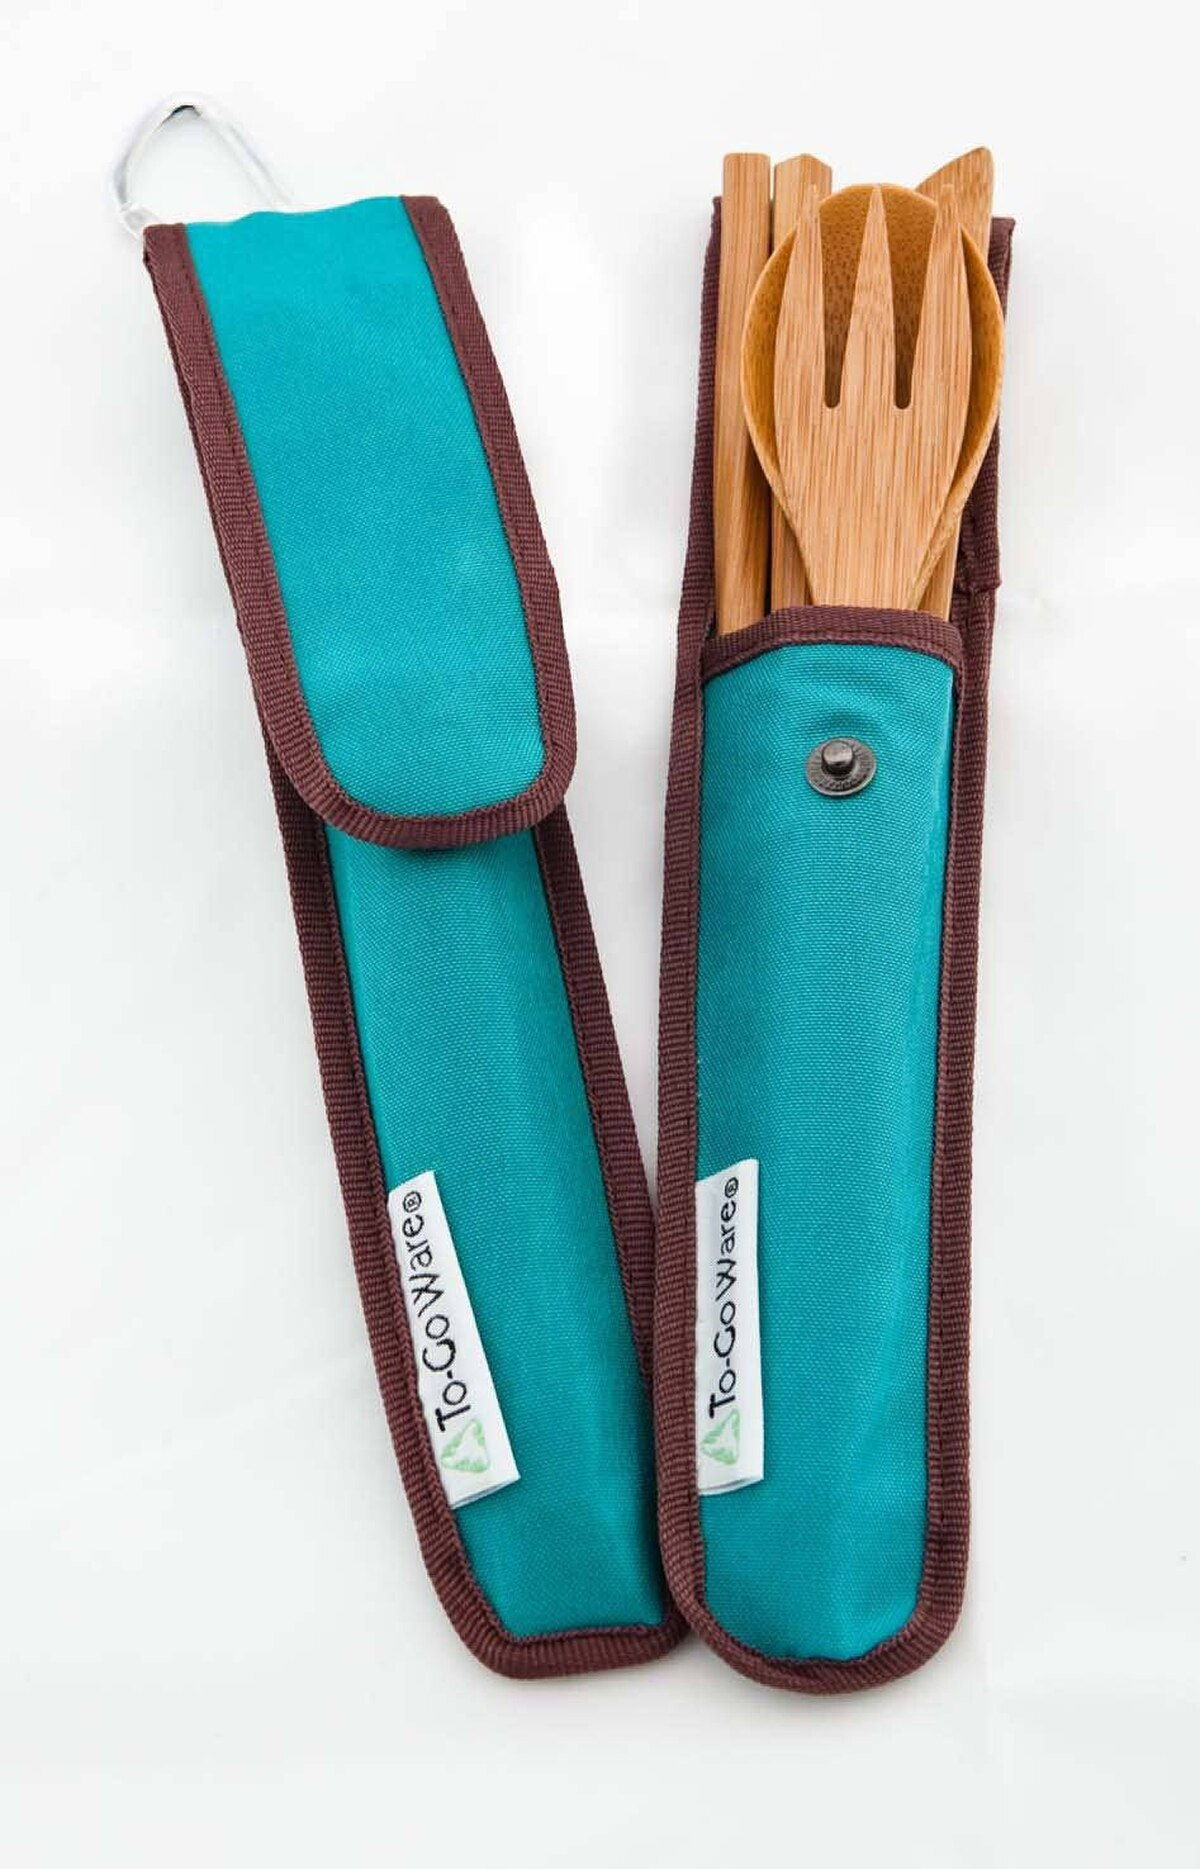 Eco-friendly cutlery Perfect for picnics, camping trips or meals at the cottage, To-Go Ware's Bamboo Utensil Set is an eco-friendly alternative to plastic cutlery. The reusable set includes a stain-resistant bamboo fork, spoon, knife and chopsticks. The carrying case is made of recycled plastic bottles. $12.95 (U.S.); rei.com